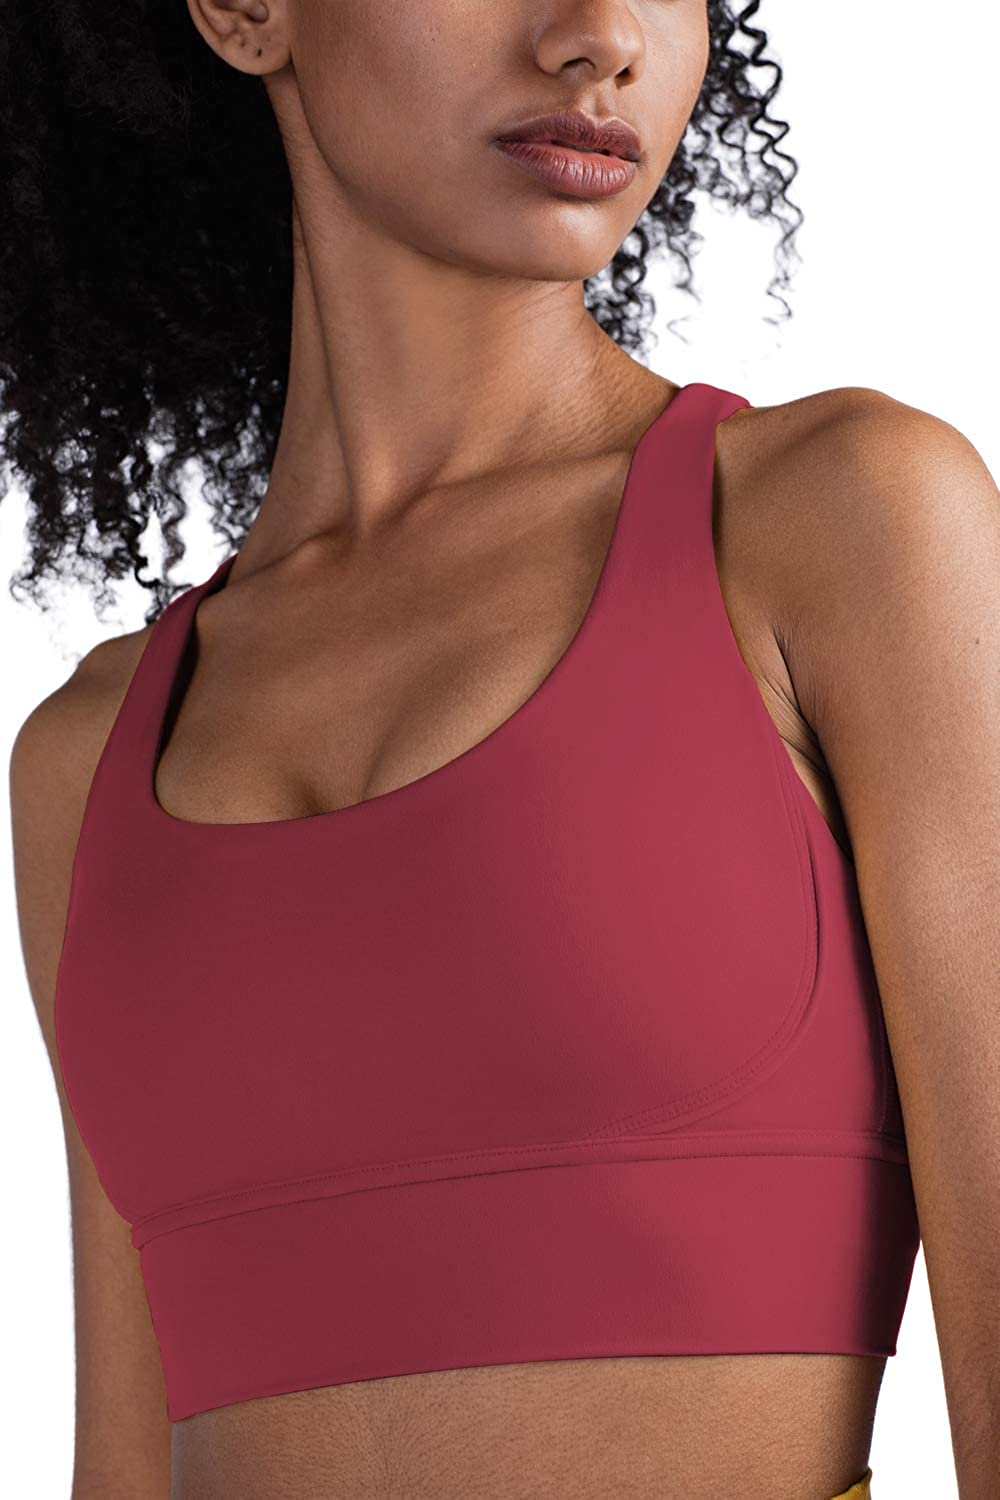 Womens Crop Top Sports Bra Strappy Longline Padded High Impact Workout Yoga Tank Camisole